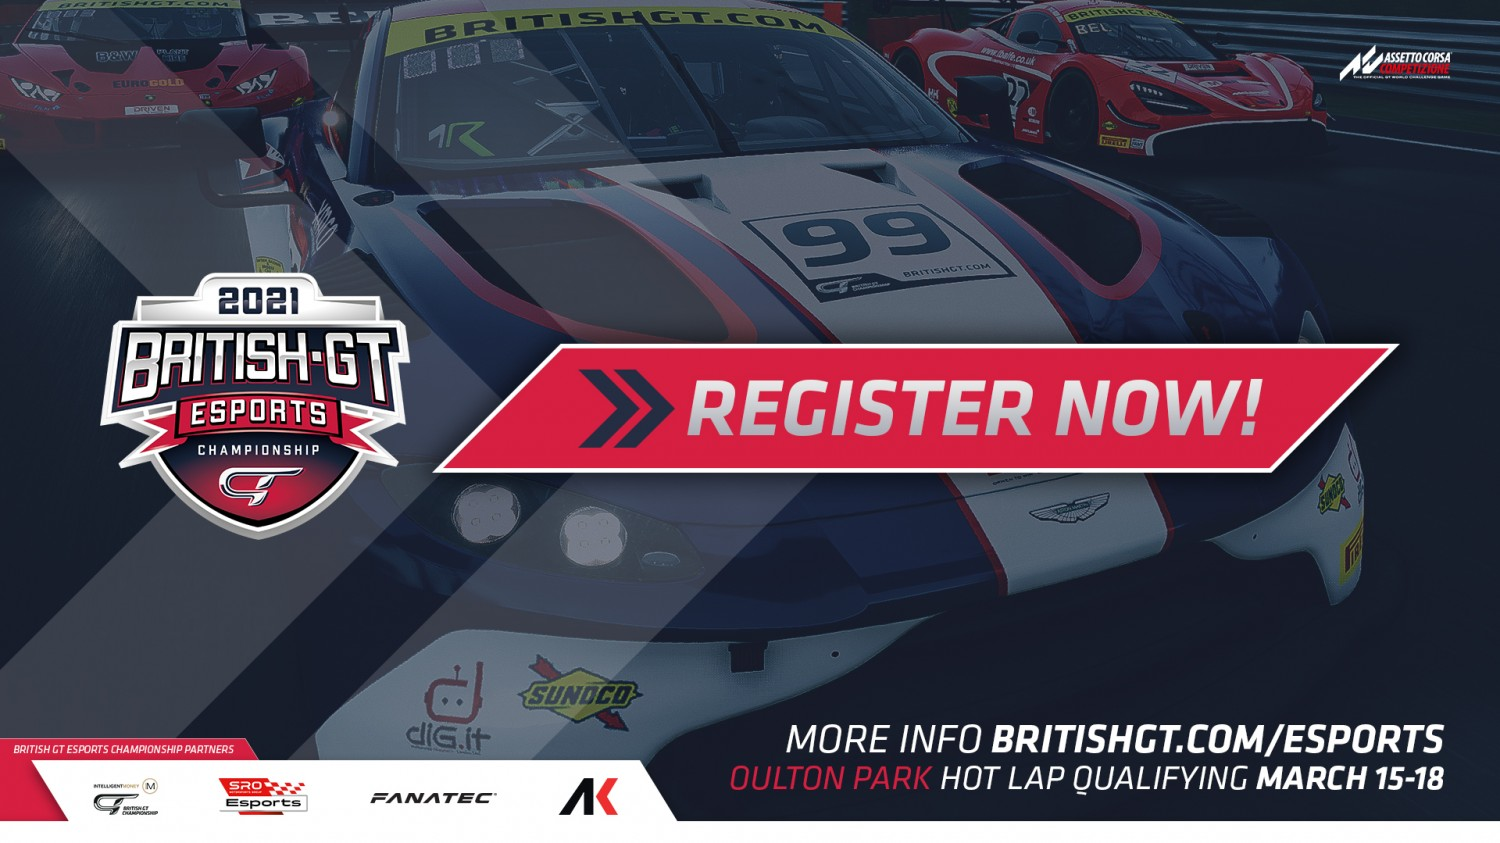 British GT Esports Championship registration is now OPEN!